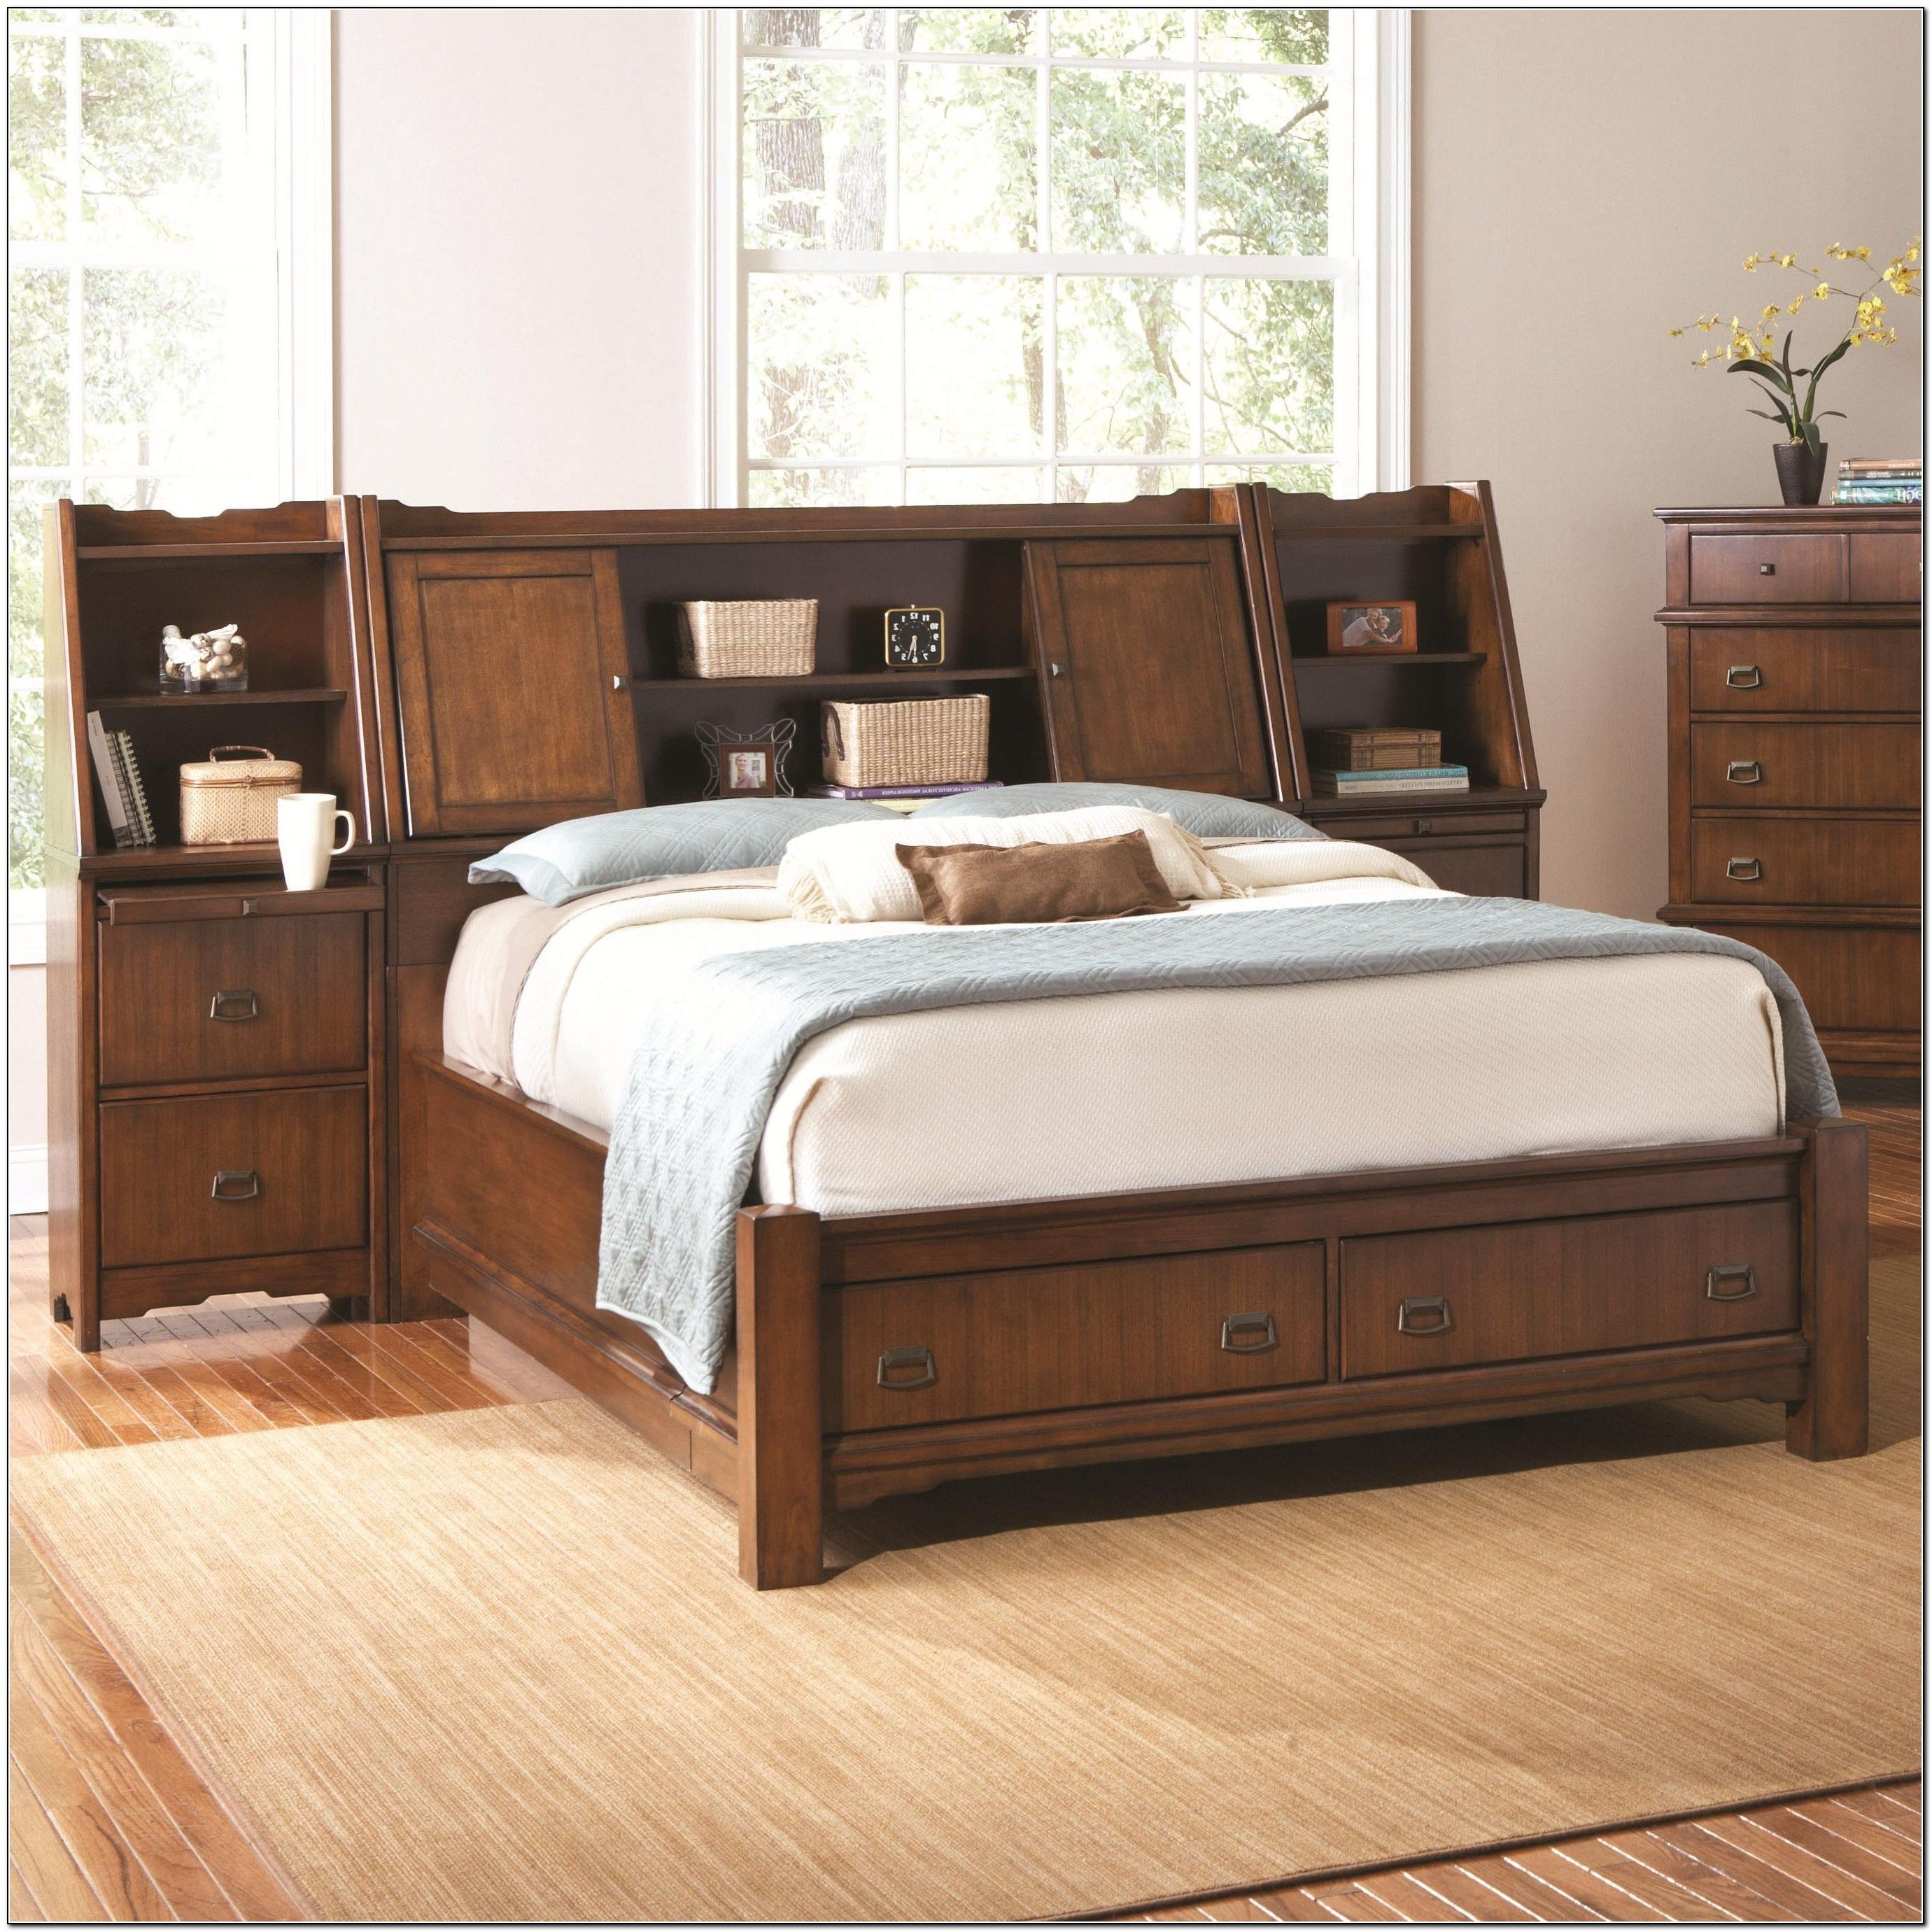 King Storage Bed With Bookcase Headboard For The Home Pinterest